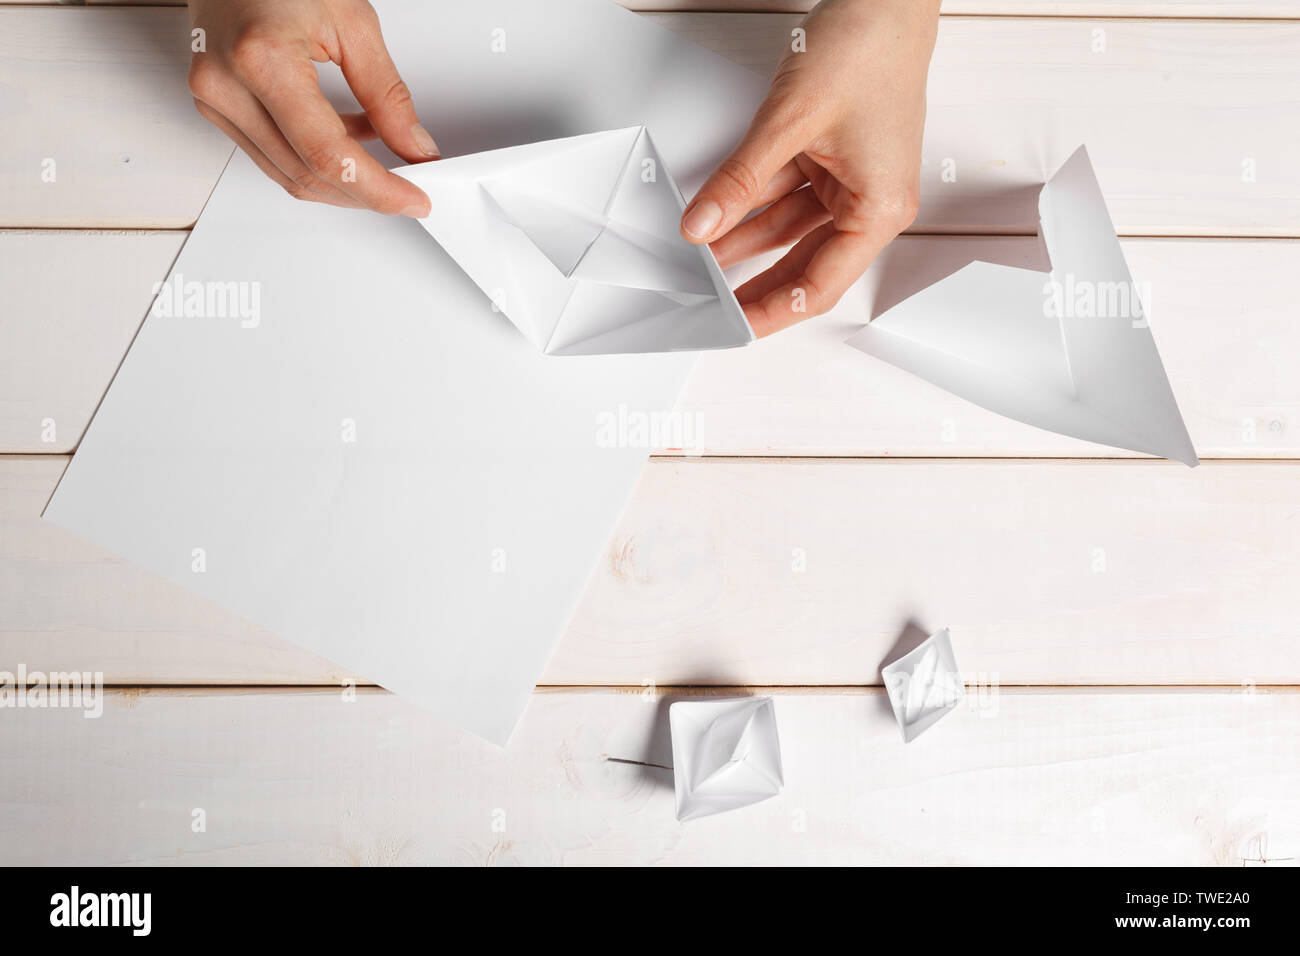 Process of handcrafting origami paper boat - Stock Image